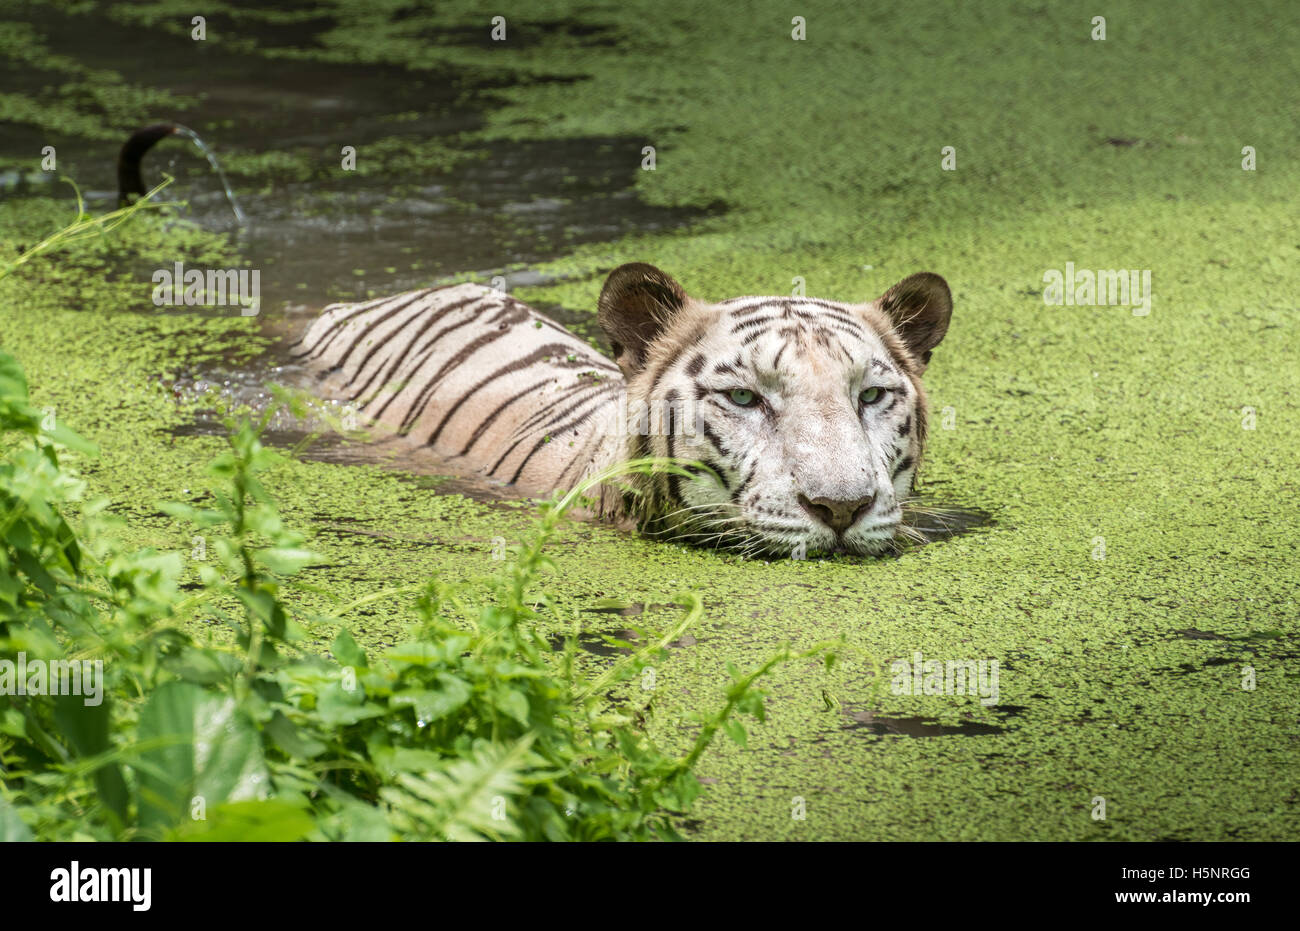 White tiger swims in the water of a marshy swamp. White Bengal tigers are considered as endangered. Stock Photo